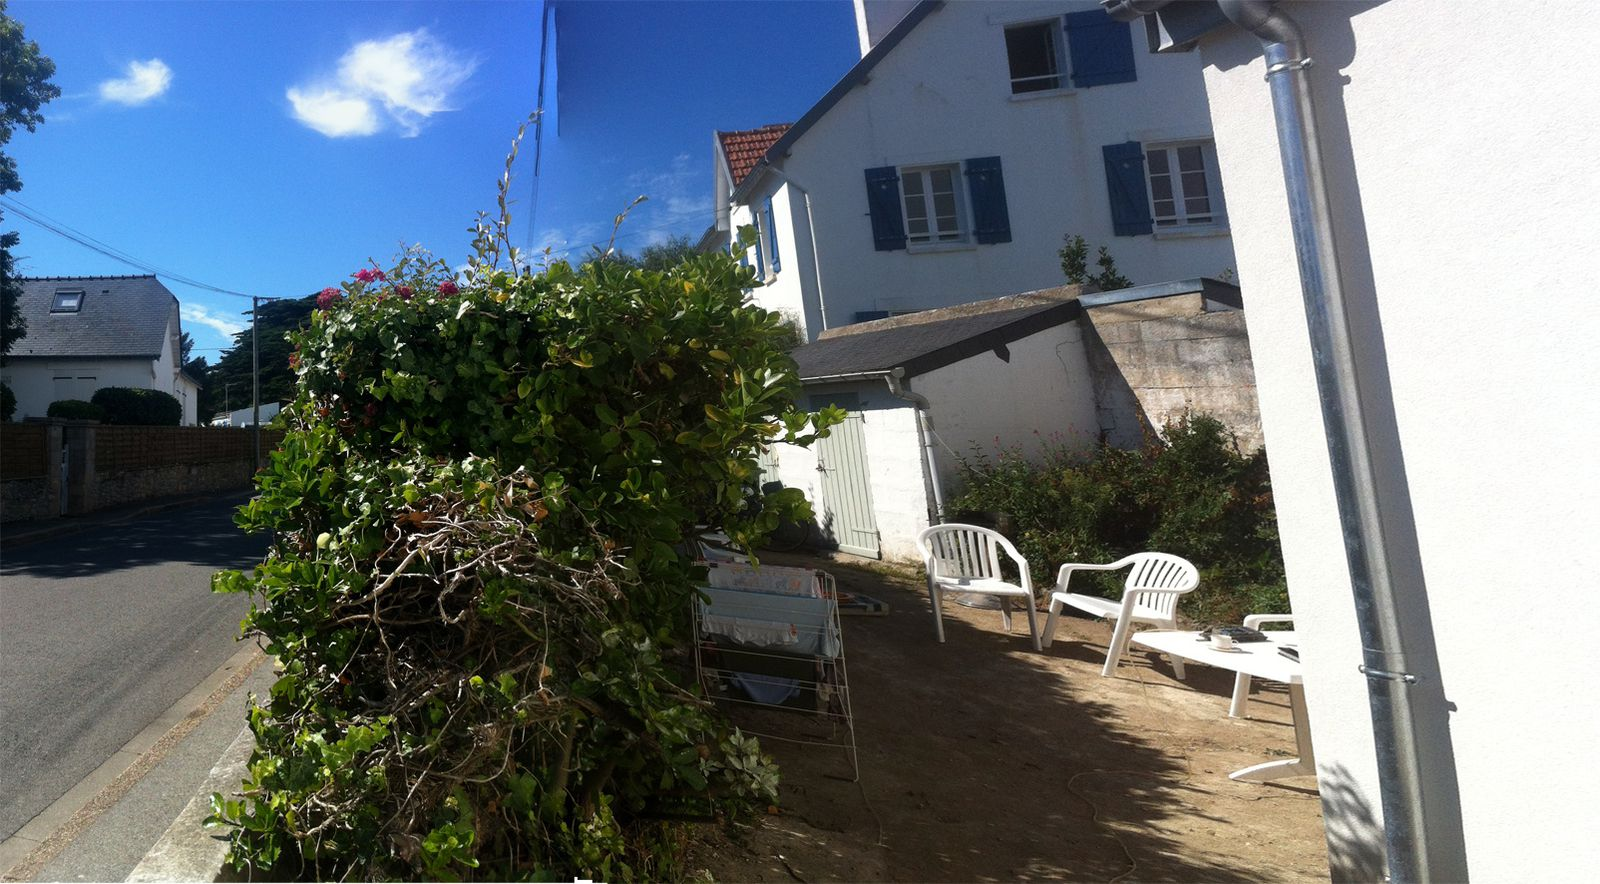 Am nagement d 39 un petit terrain quiberon maezad for Amenagement paysager petit terrain